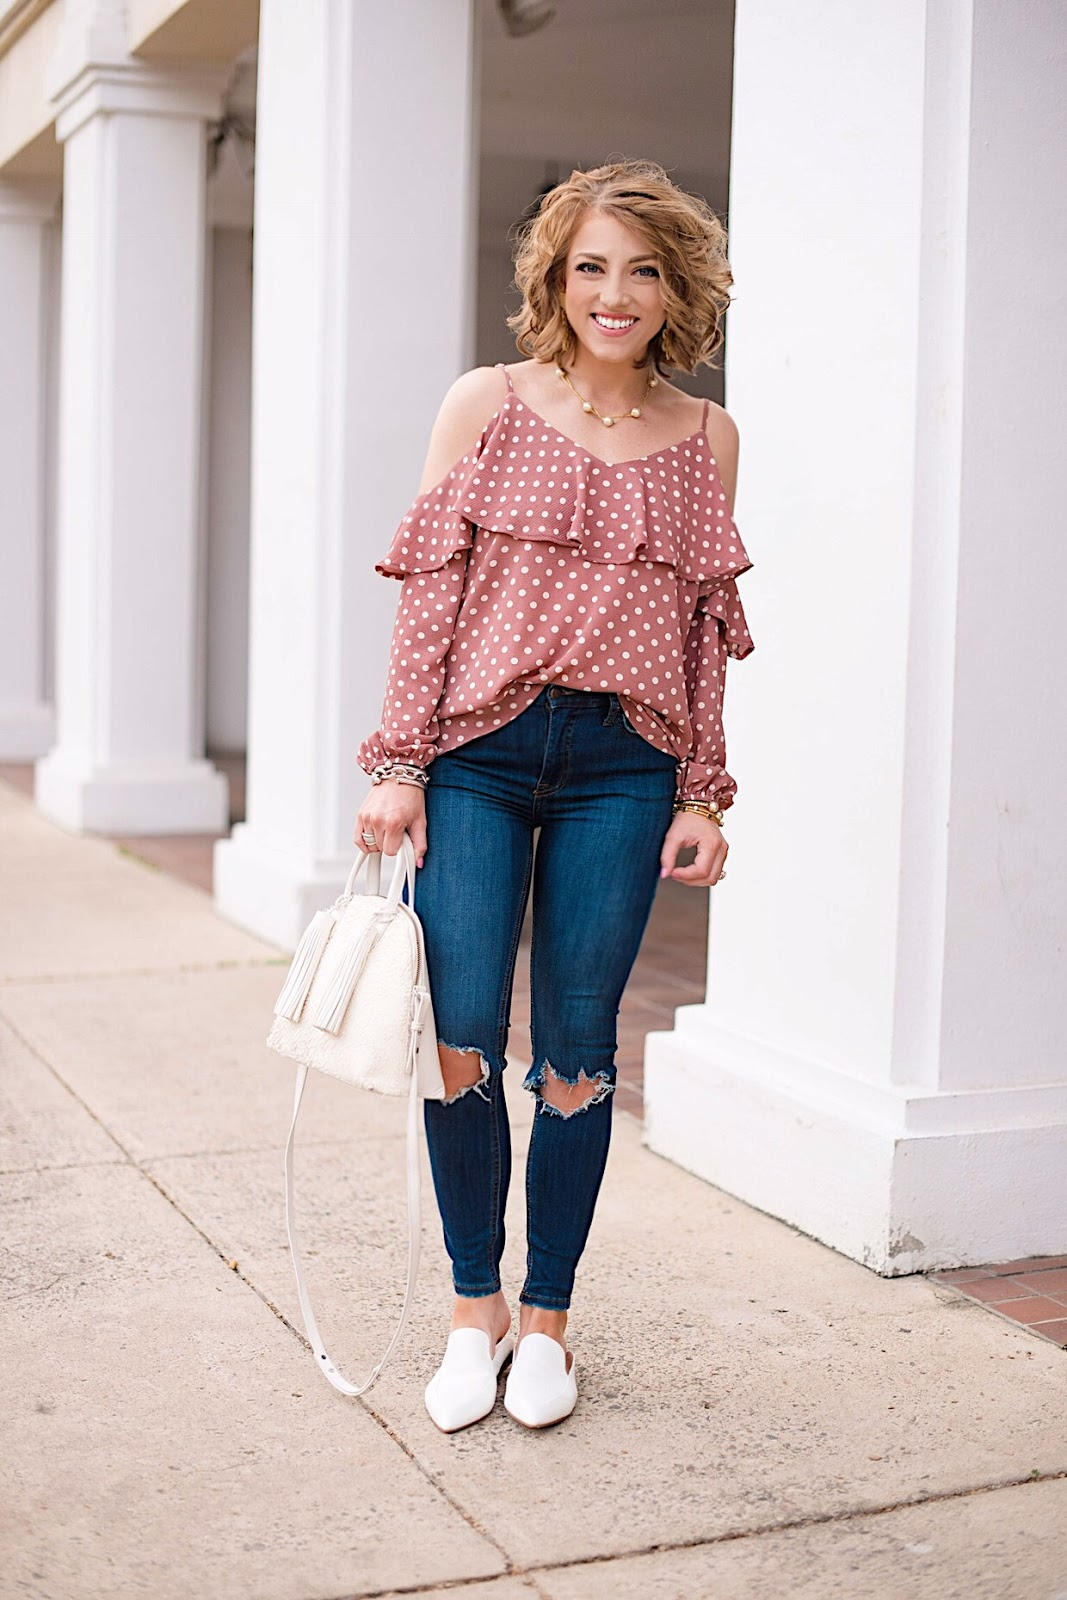 Spring Style - Click through to see more on Something Delightful Blog